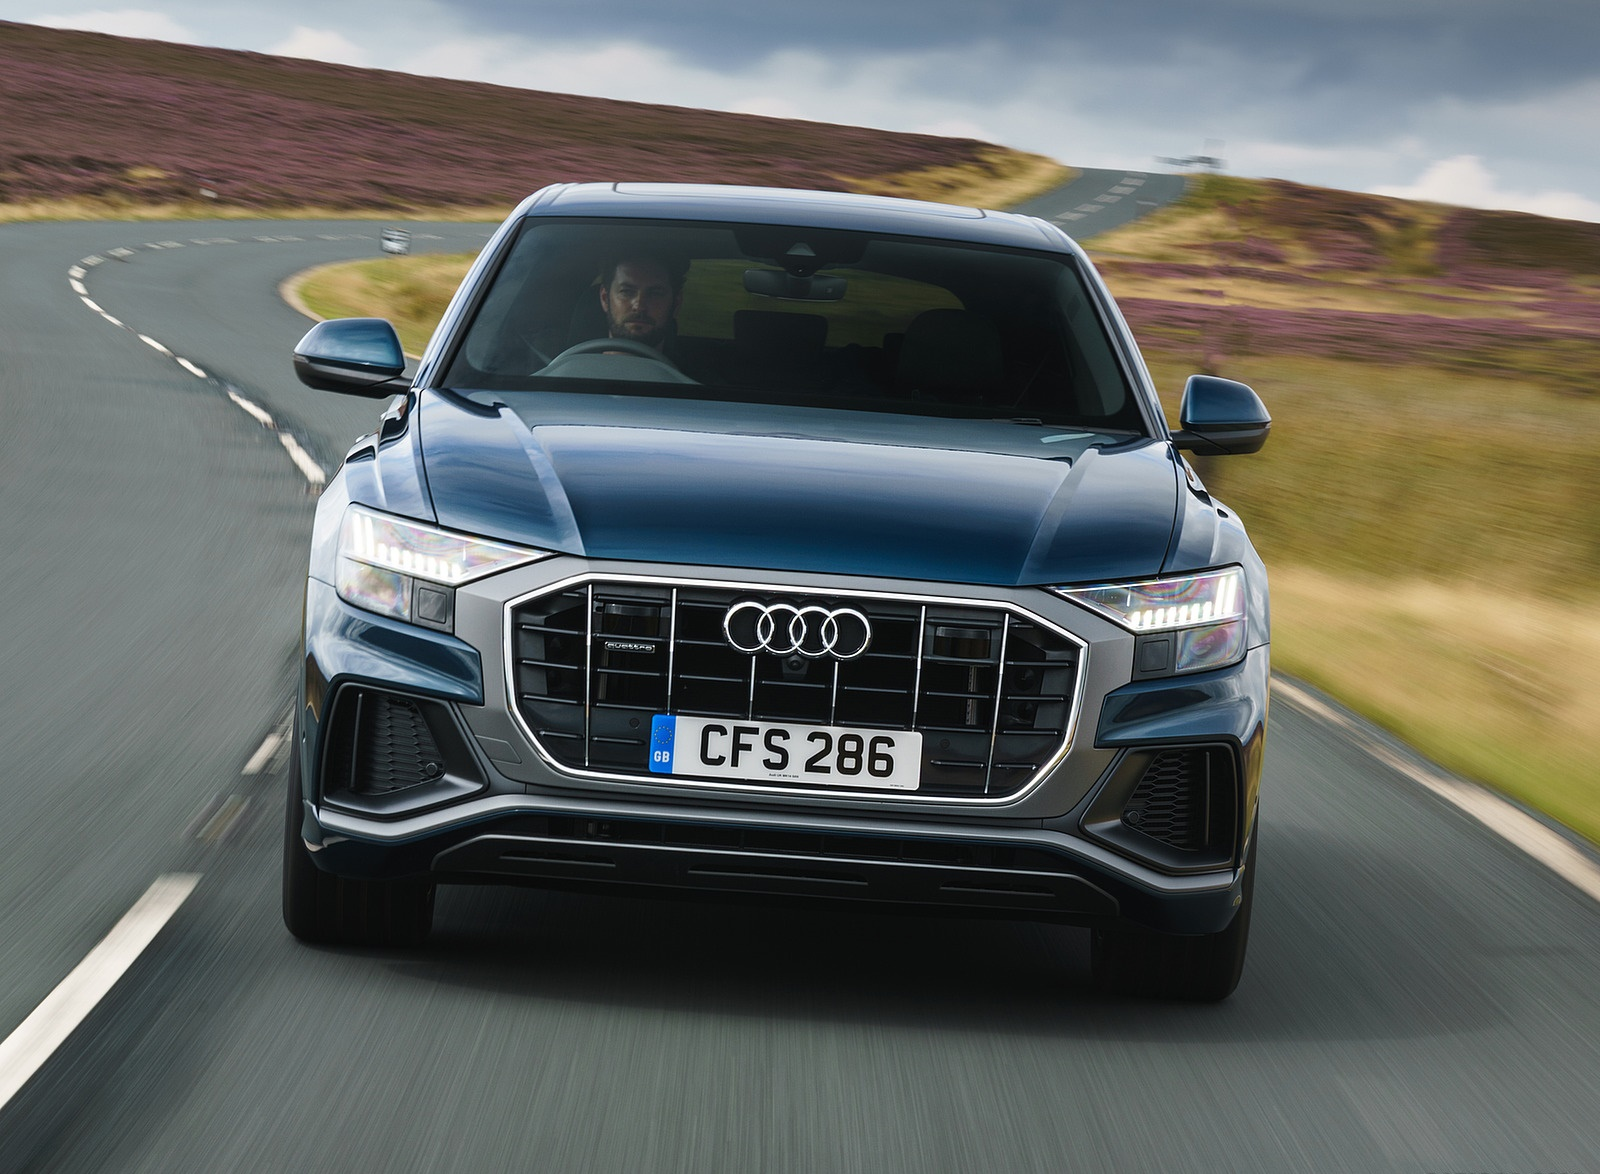 2019 Audi Q8 S Line 50 TDI Quattro (UK-Spec) Front Wallpaper (3)